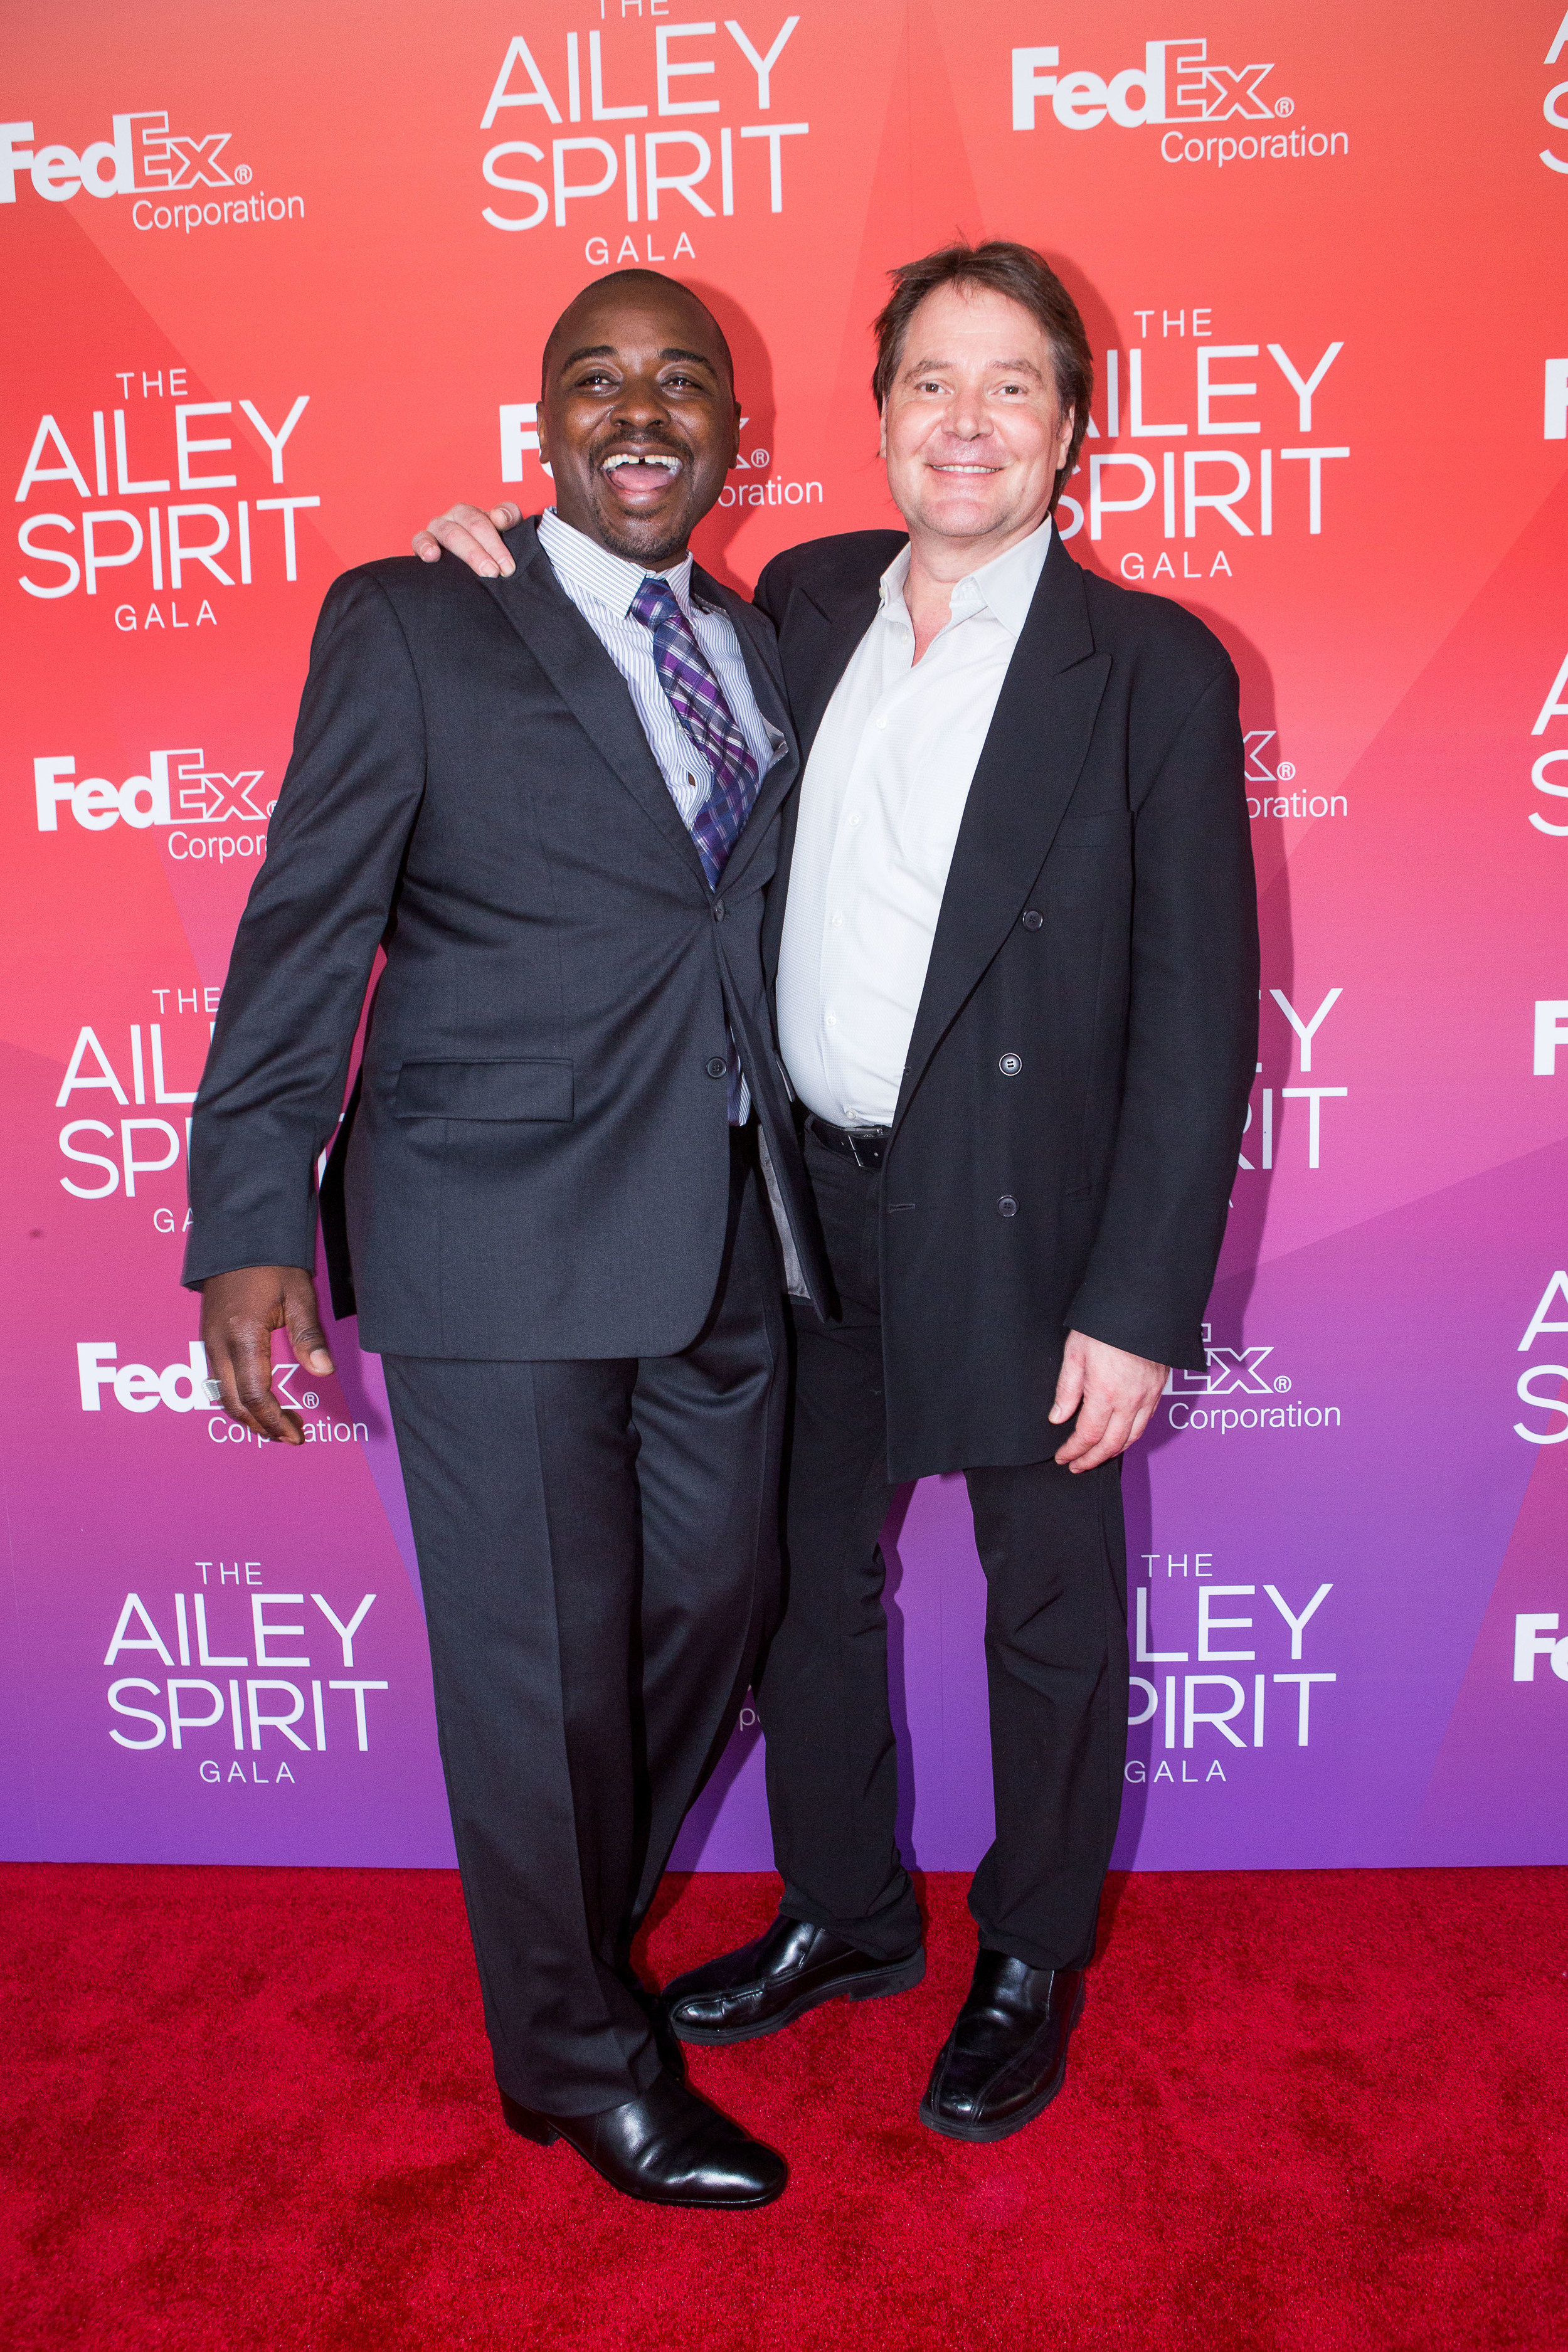 Alvin Ailey American Dance Theater Artistic DirectorRobert Battle and David Parsons at the 2014 Ailey Sprit Gala at Lincoln Center. Photo by Dario Calmese Jr.